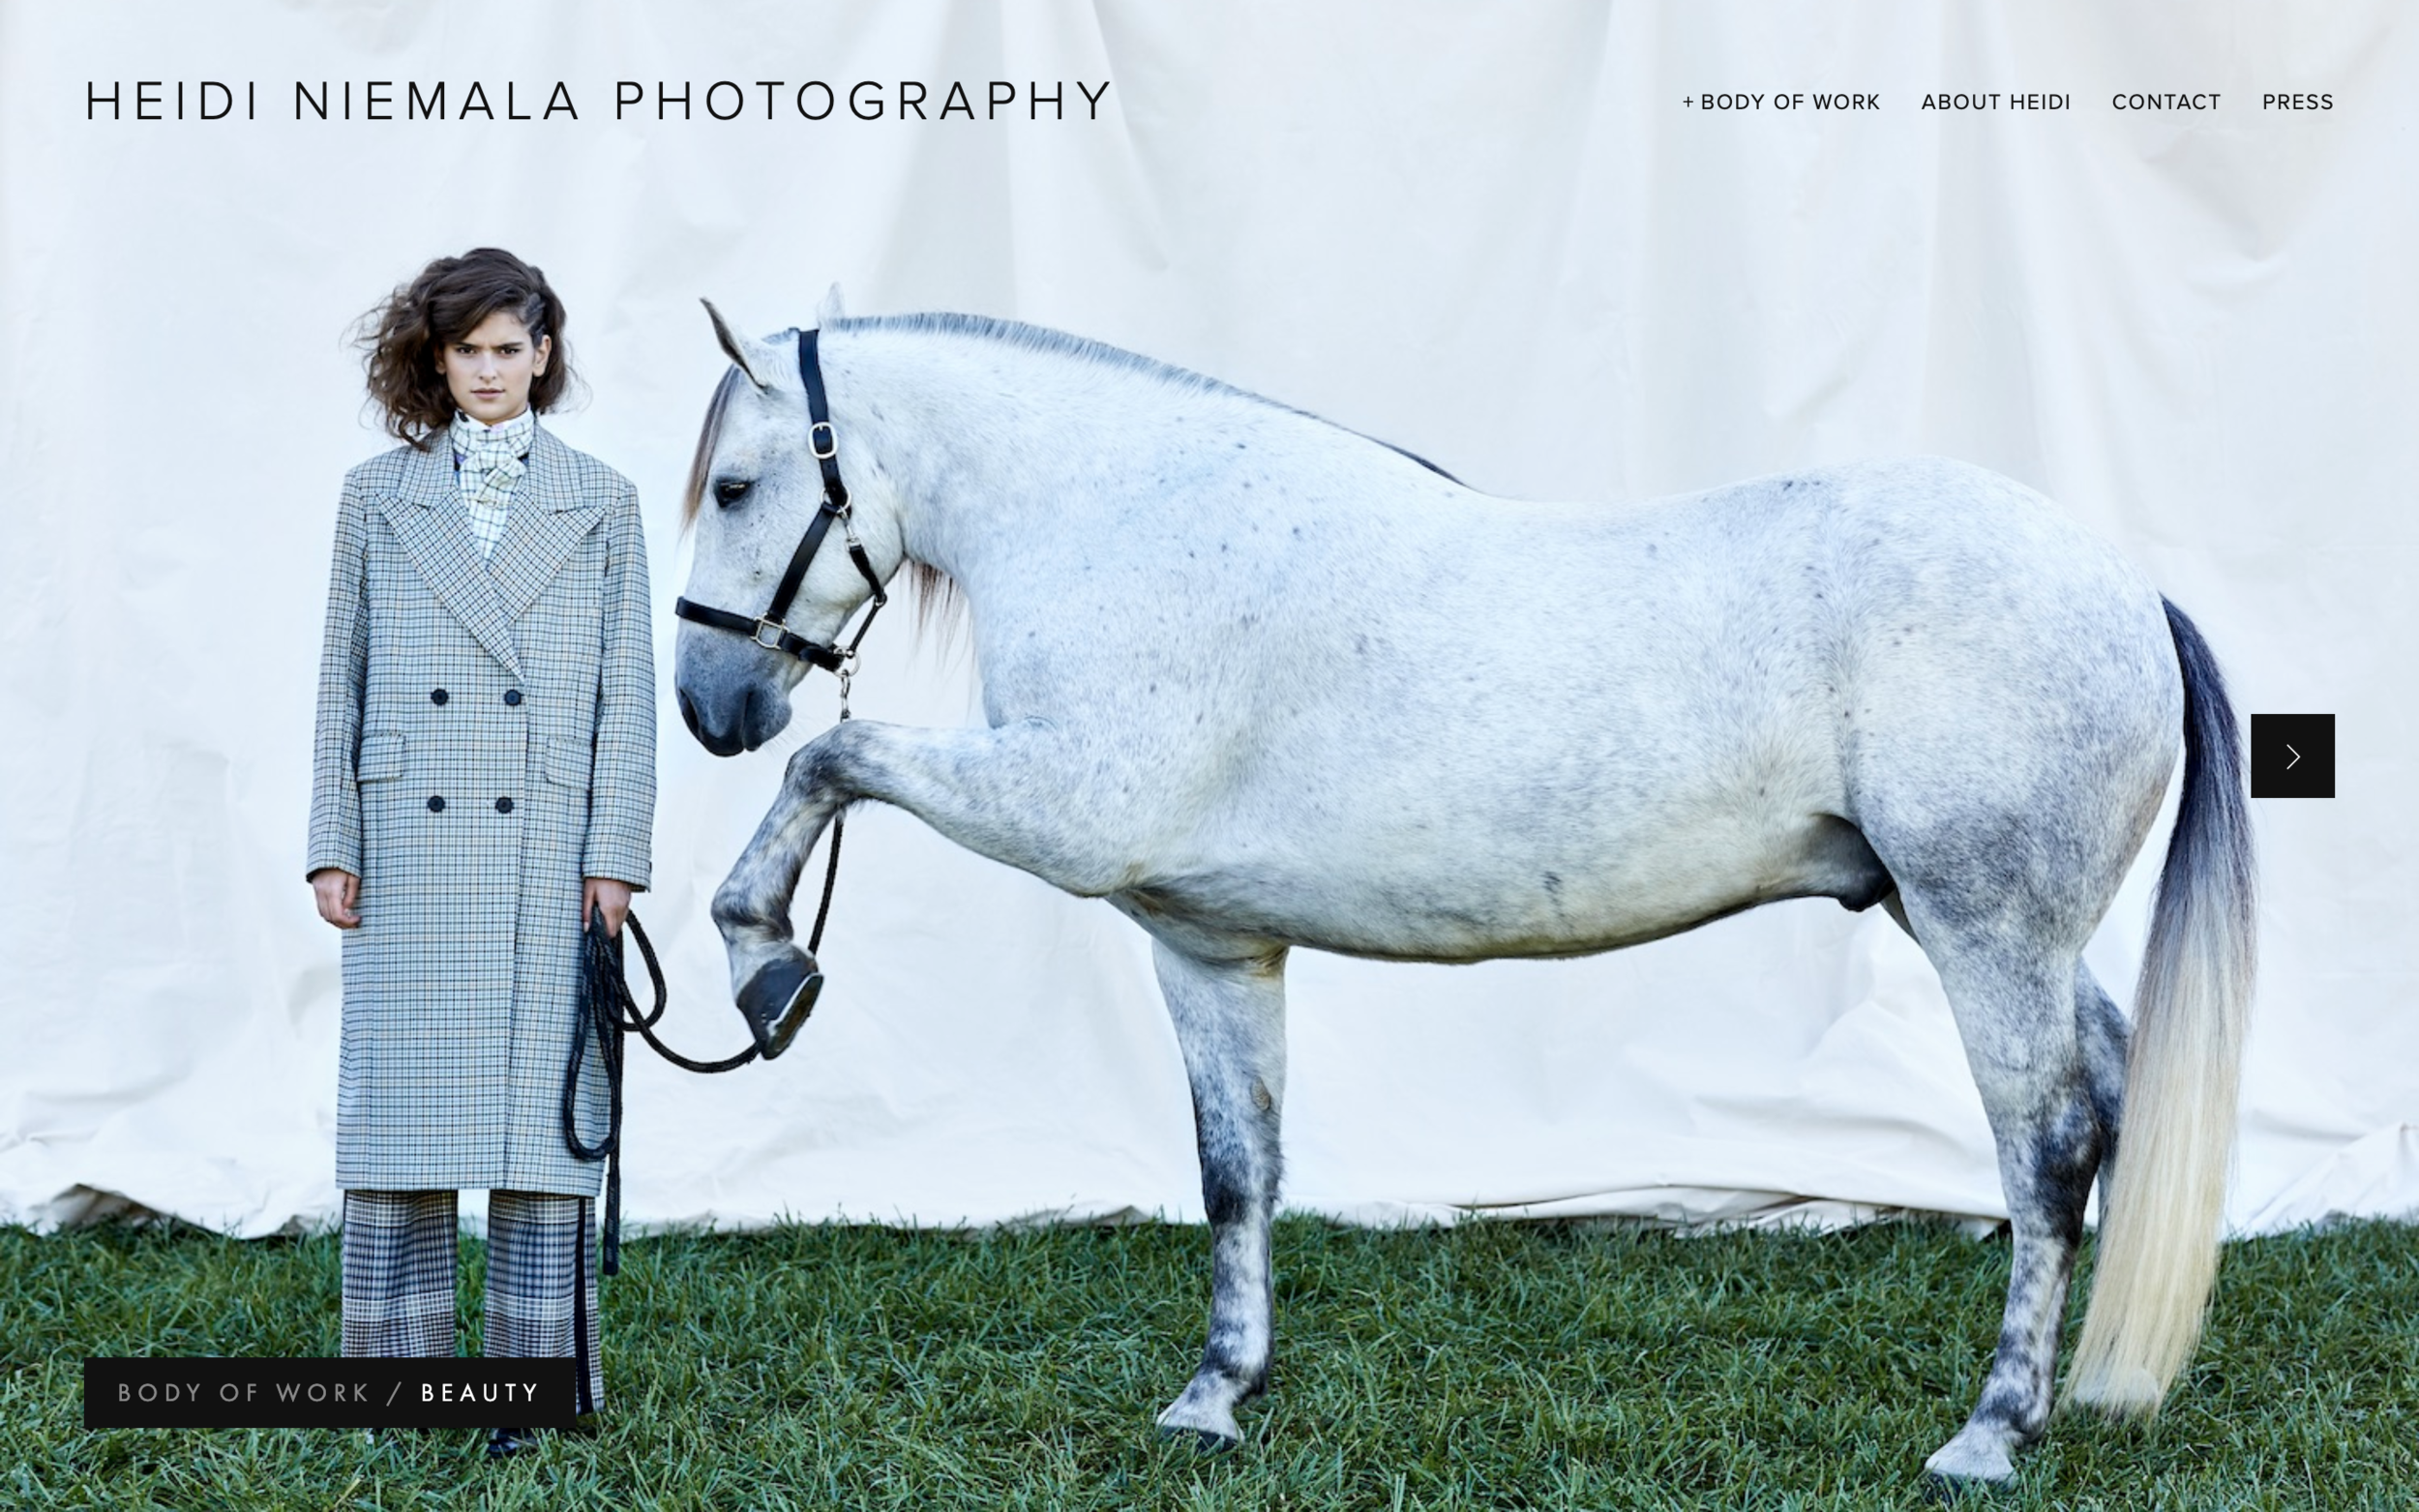 heidiniemala.com - Modern Photography Squarespace WebsitePhotography Squarespace websites are all about creating a beautiful layout in the platform. This Photography Squarespace  build begs the users to keep exploring the beautiful images.